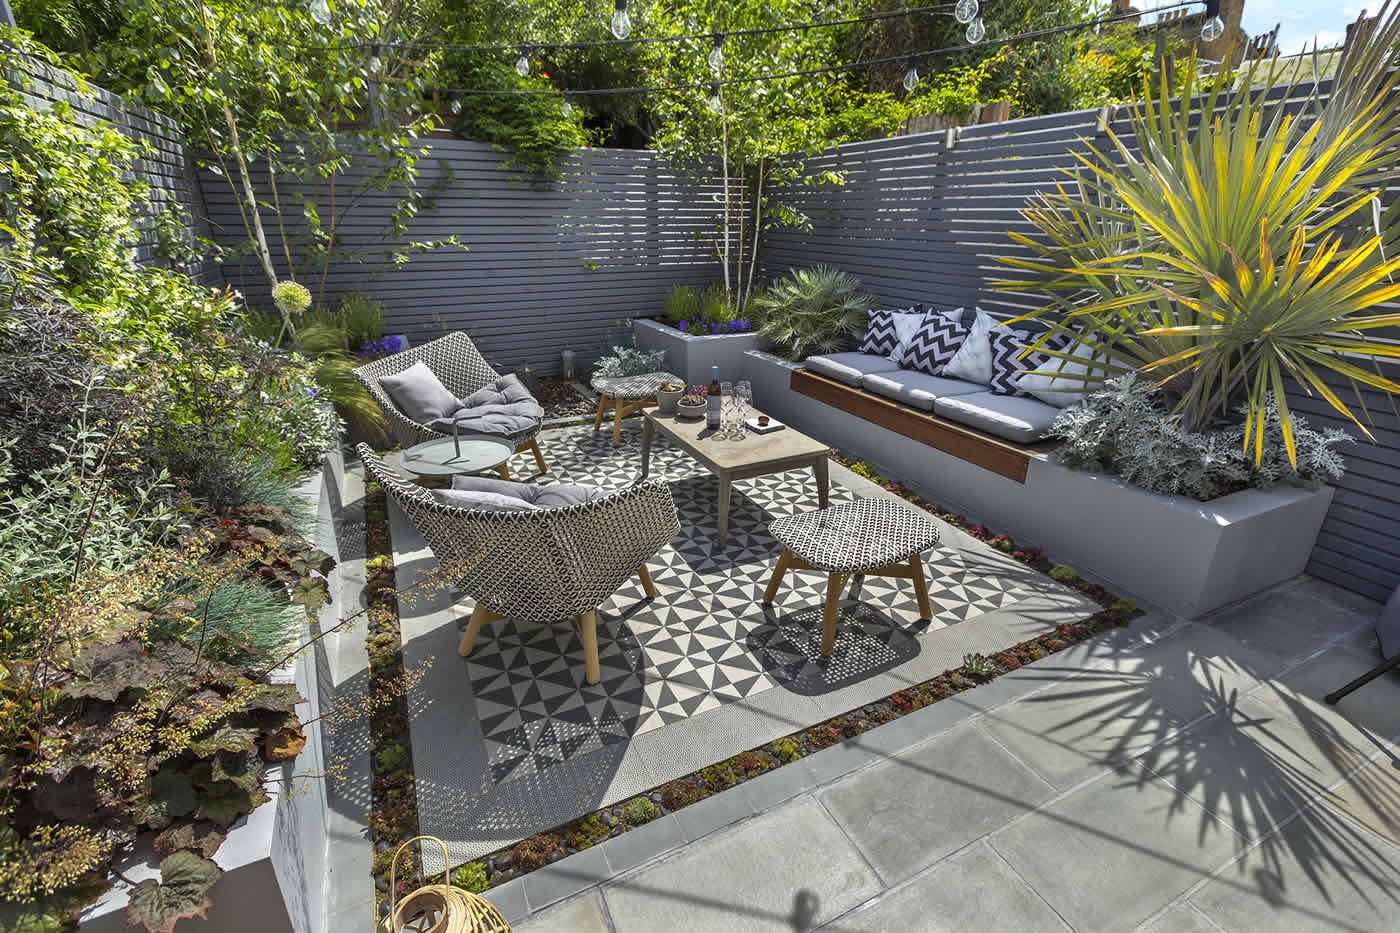 private small garden design ideas for this small south london courtyard garden evolved from the clients - Small Garden Design